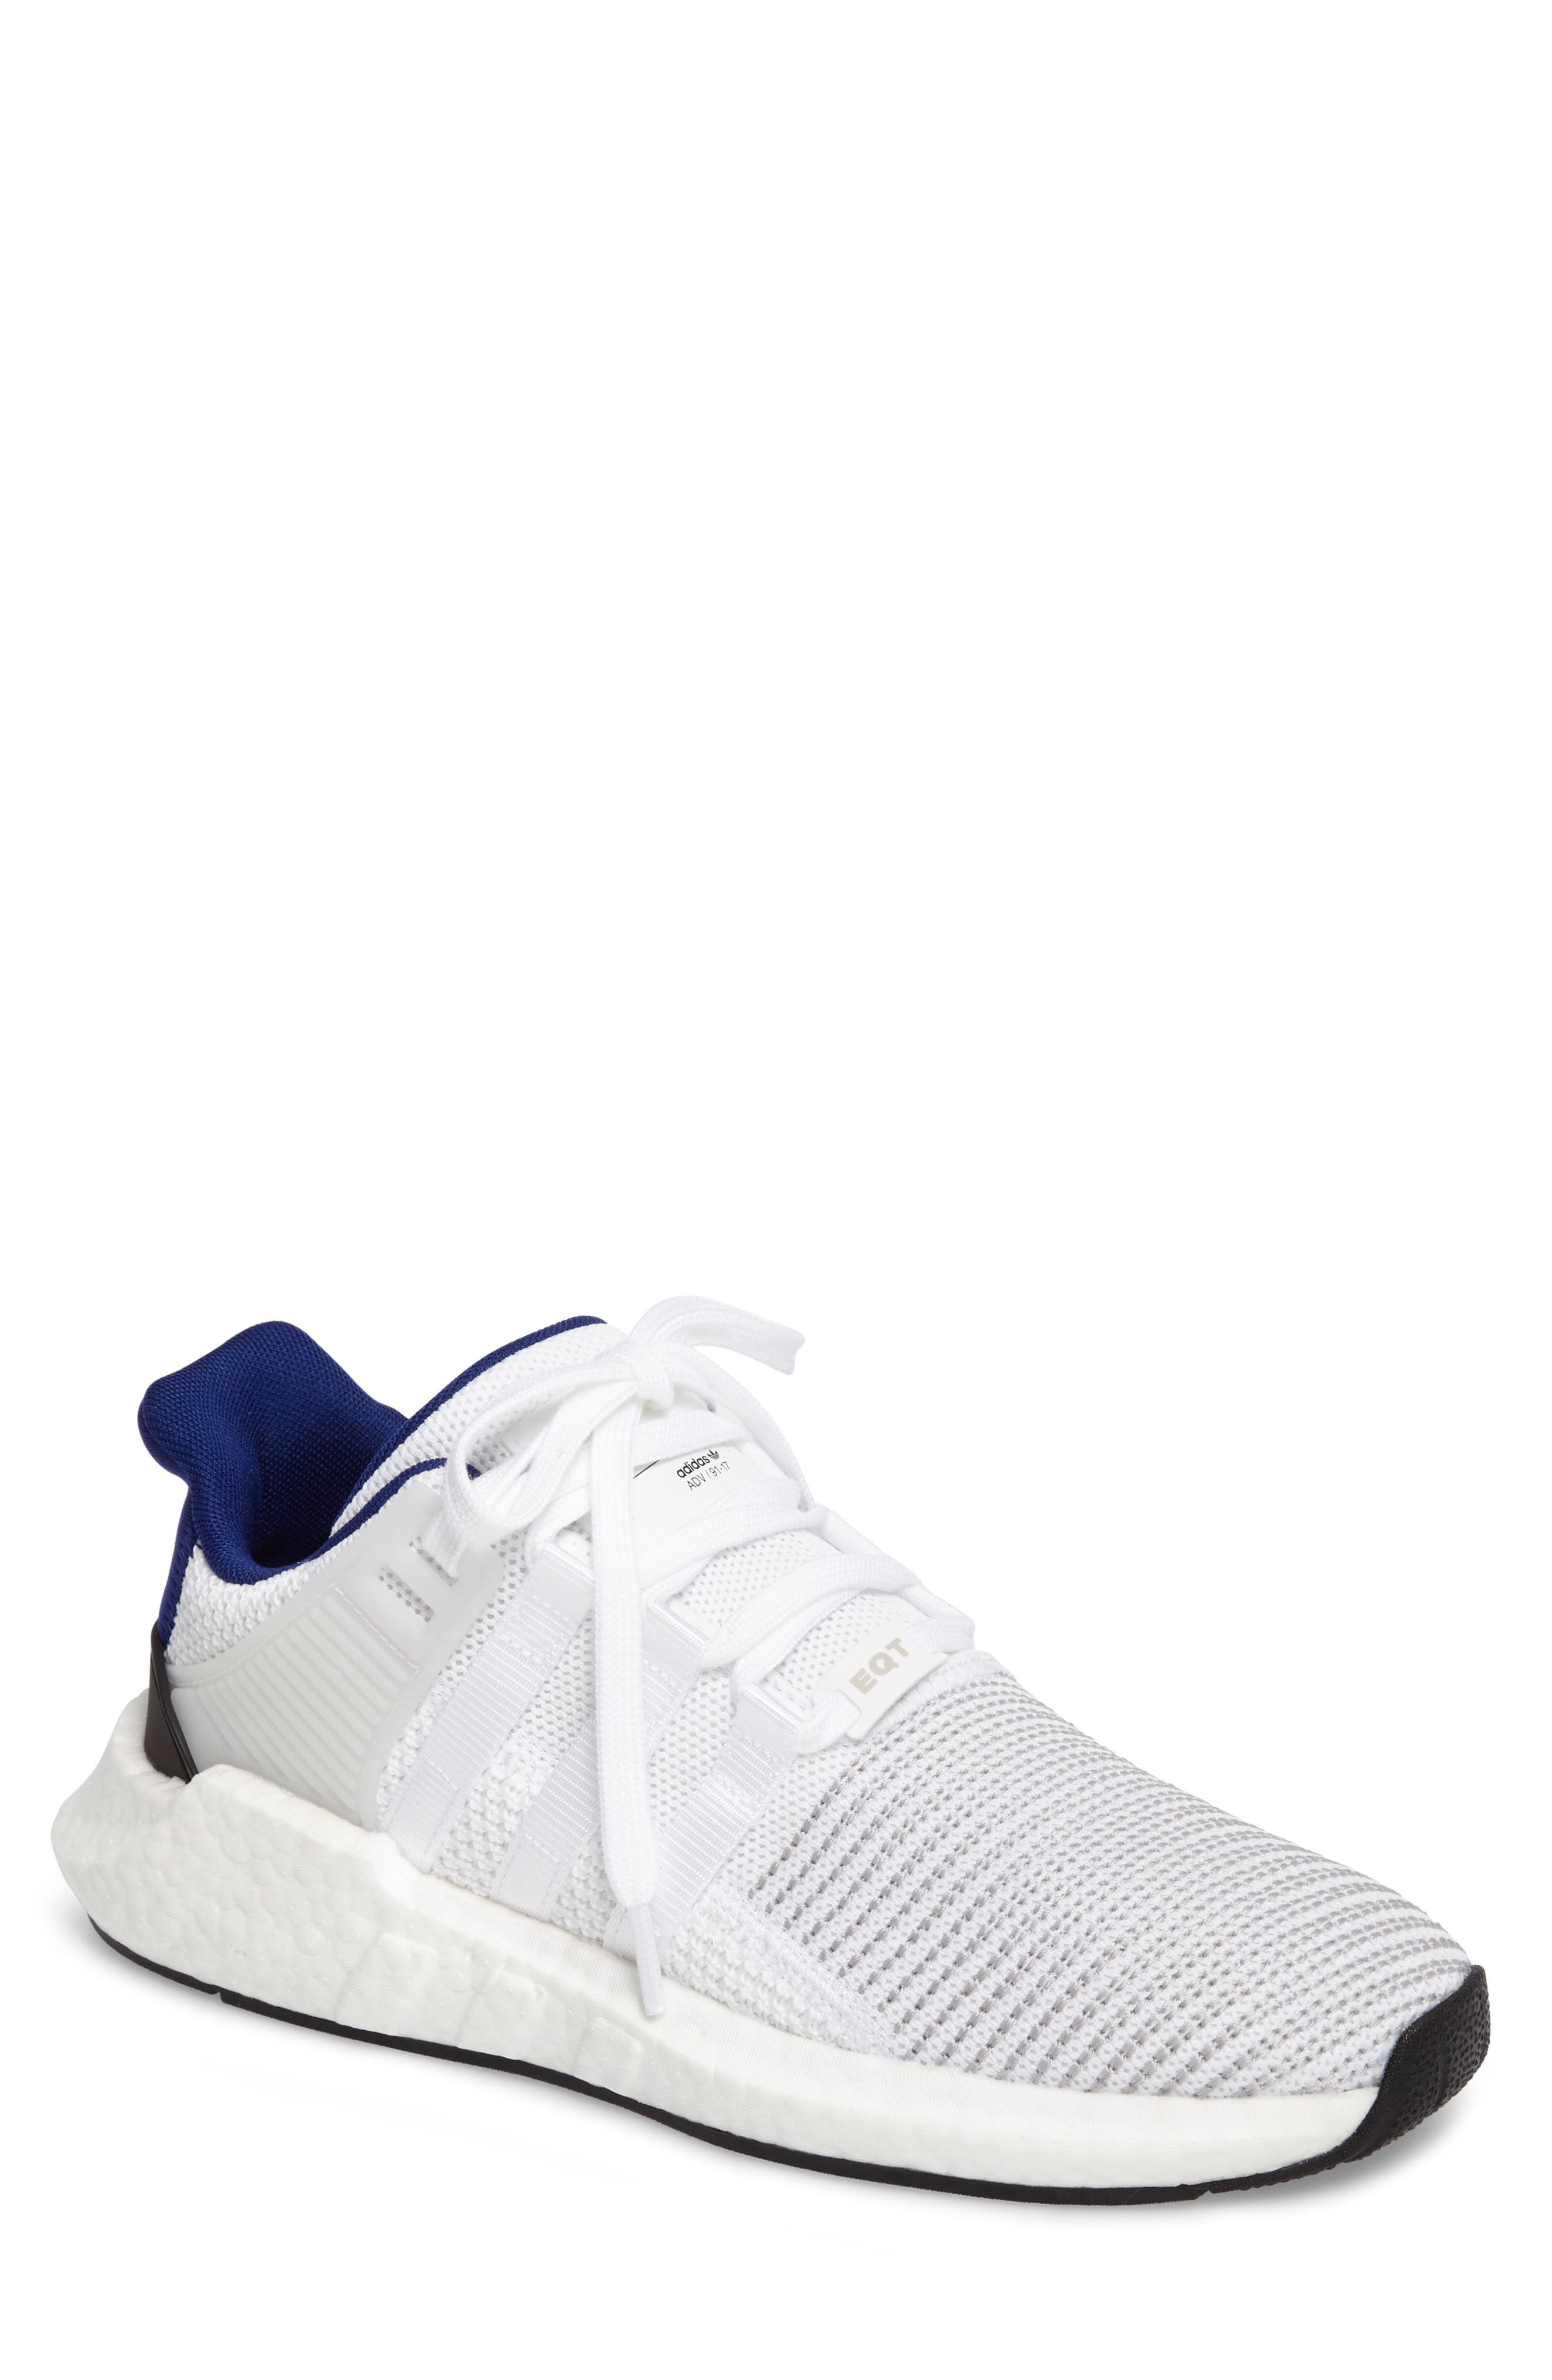 Alternate Image 1 Selected - adidas EQT Support 93/17 Sneaker (Men)